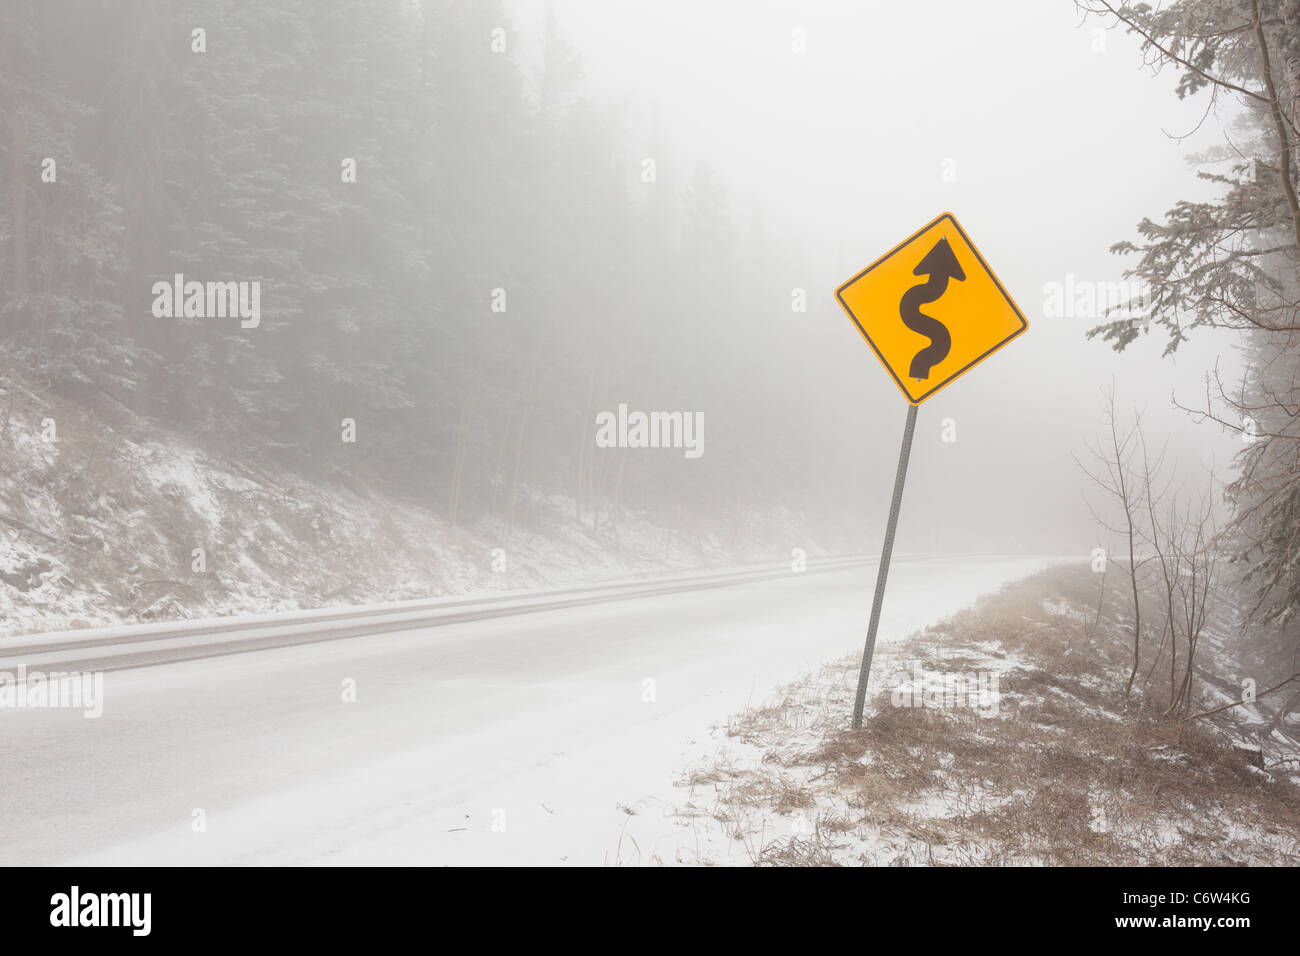 A curved road sign on a mountain road in snow and fog. - Stock Image